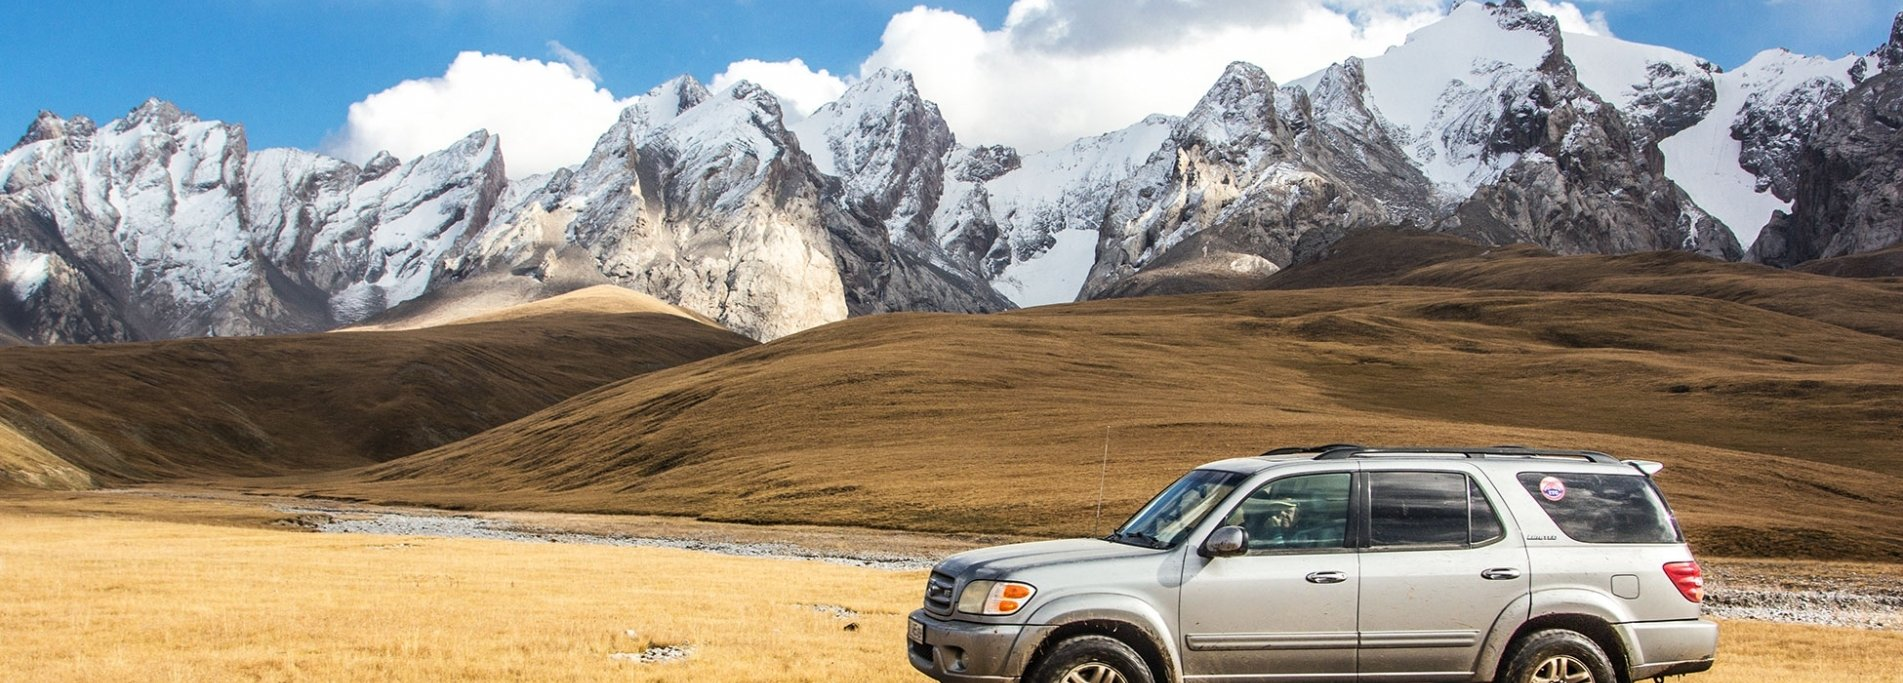 By car across Kyrgyzstan - 4x4 adventure in country of Celestial Mountains